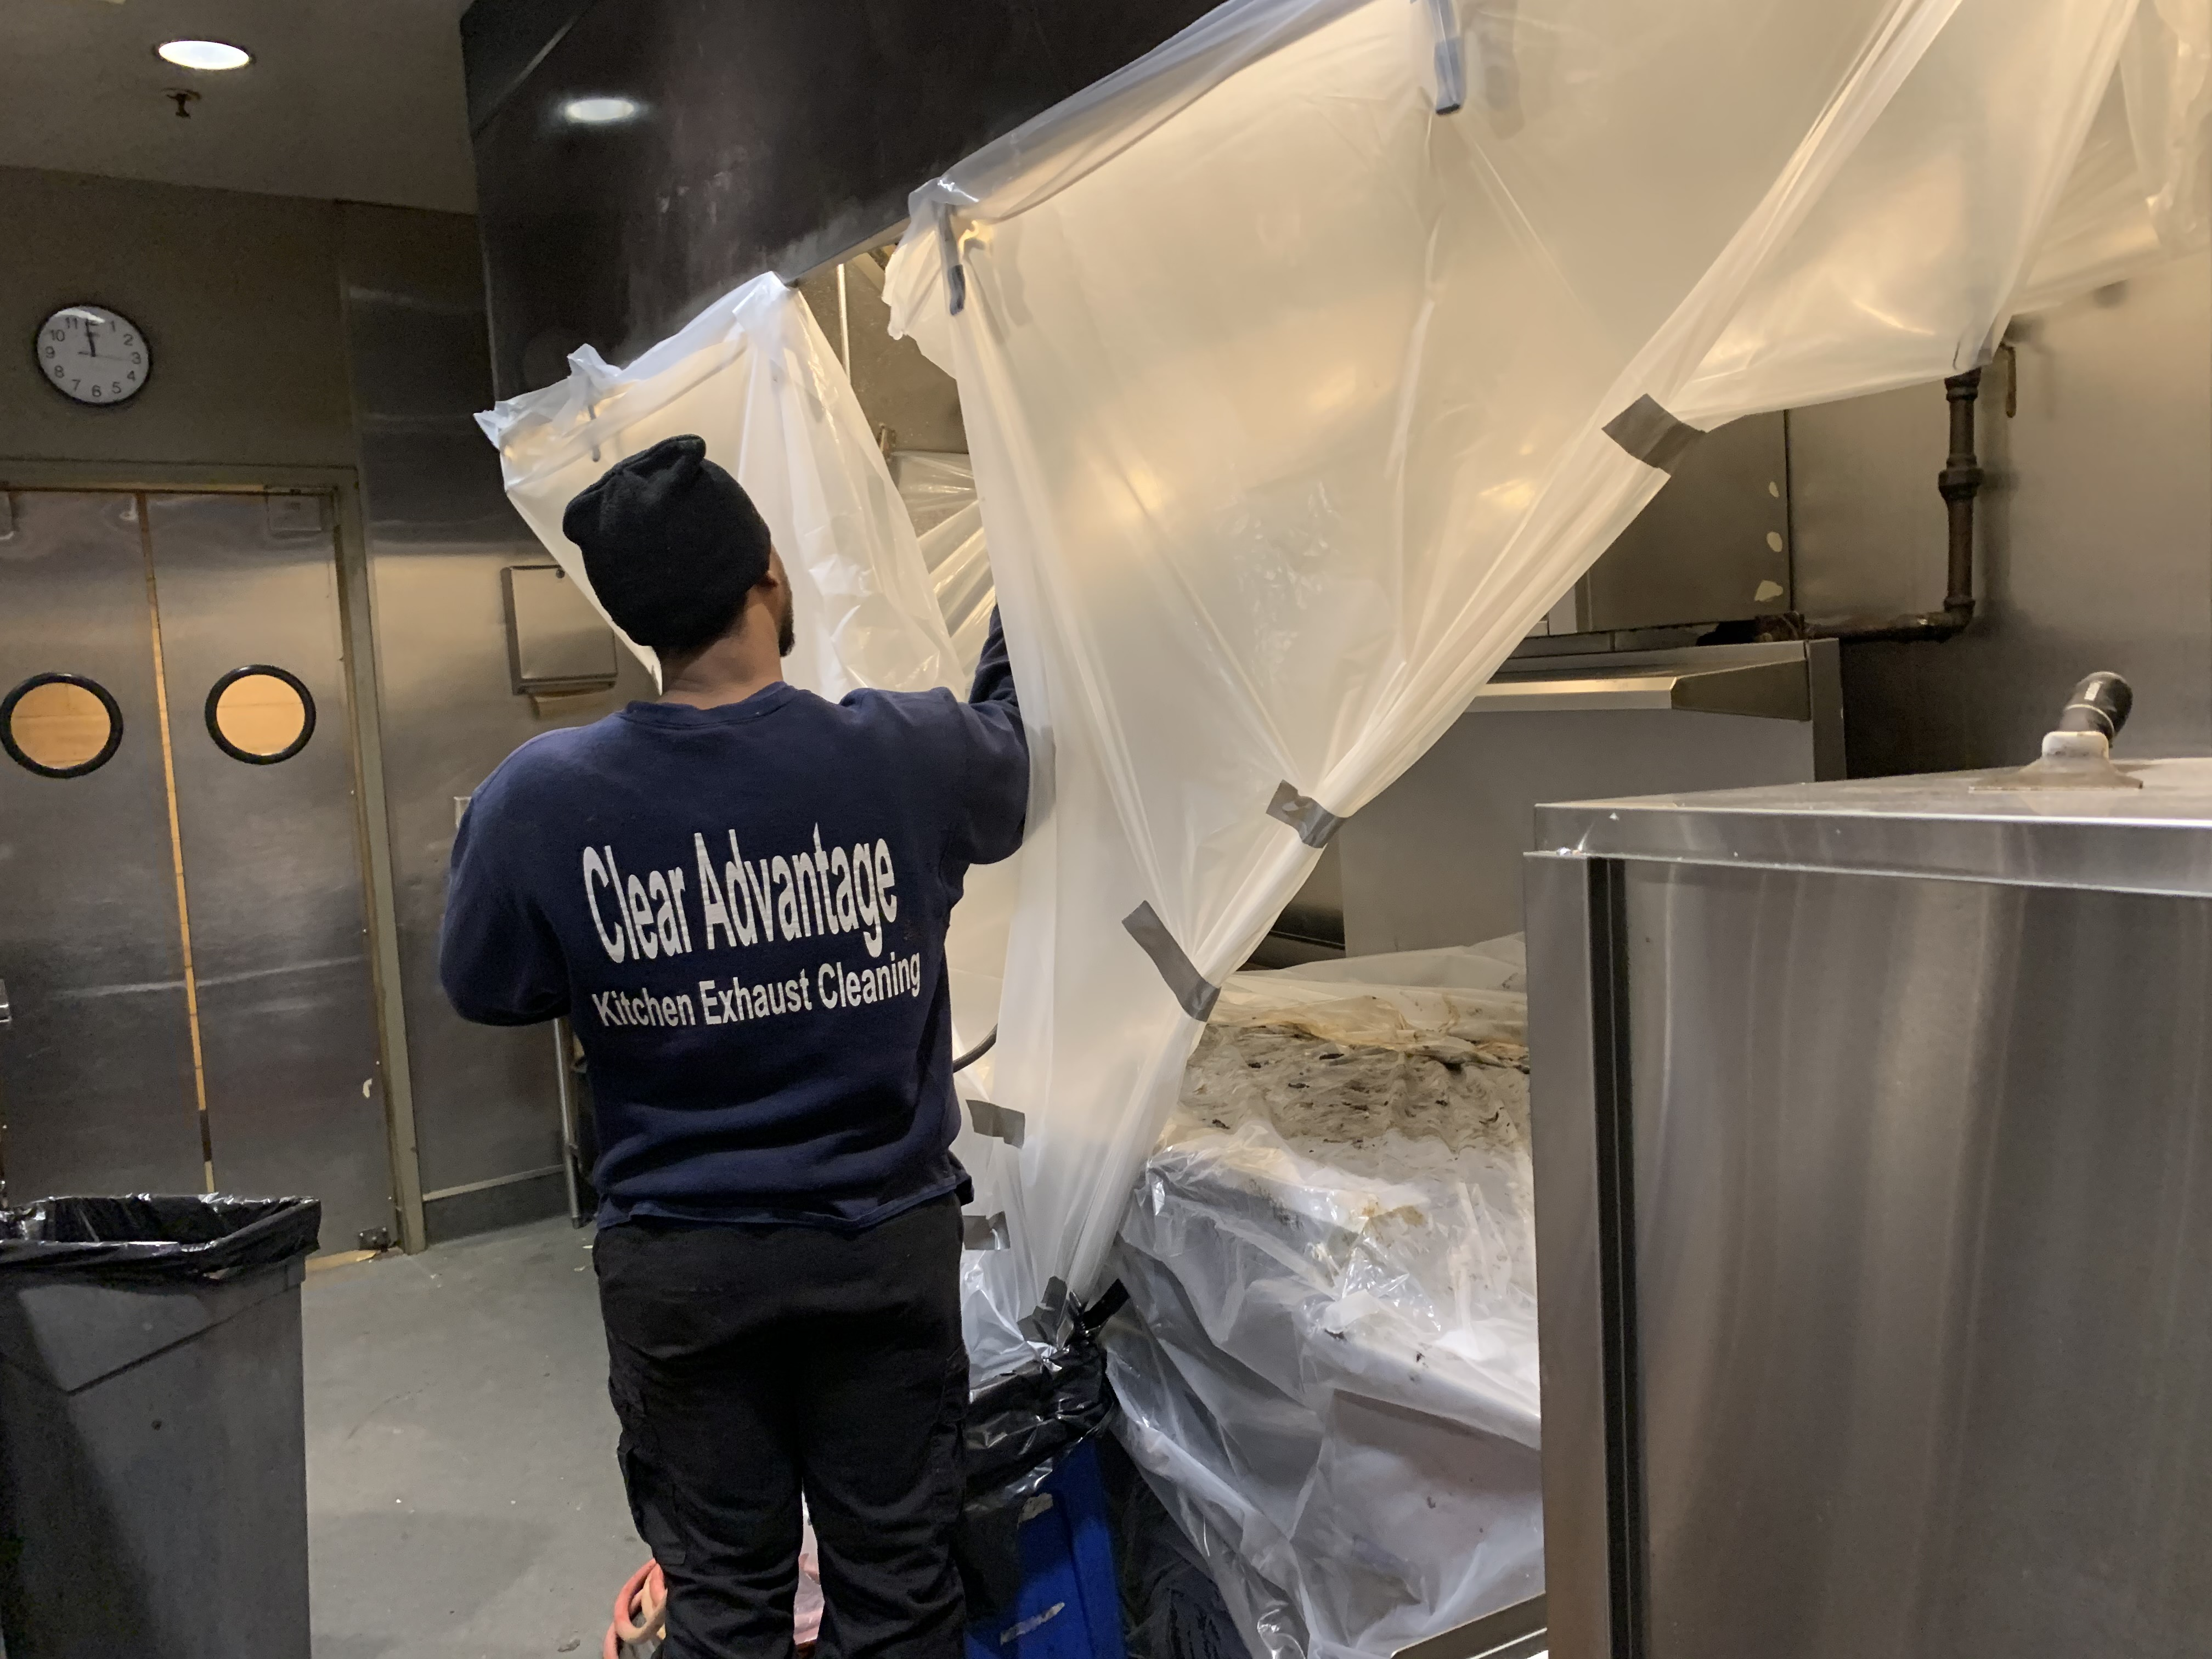 Clear Advantage Kitchen Exhaust Cleaning Service